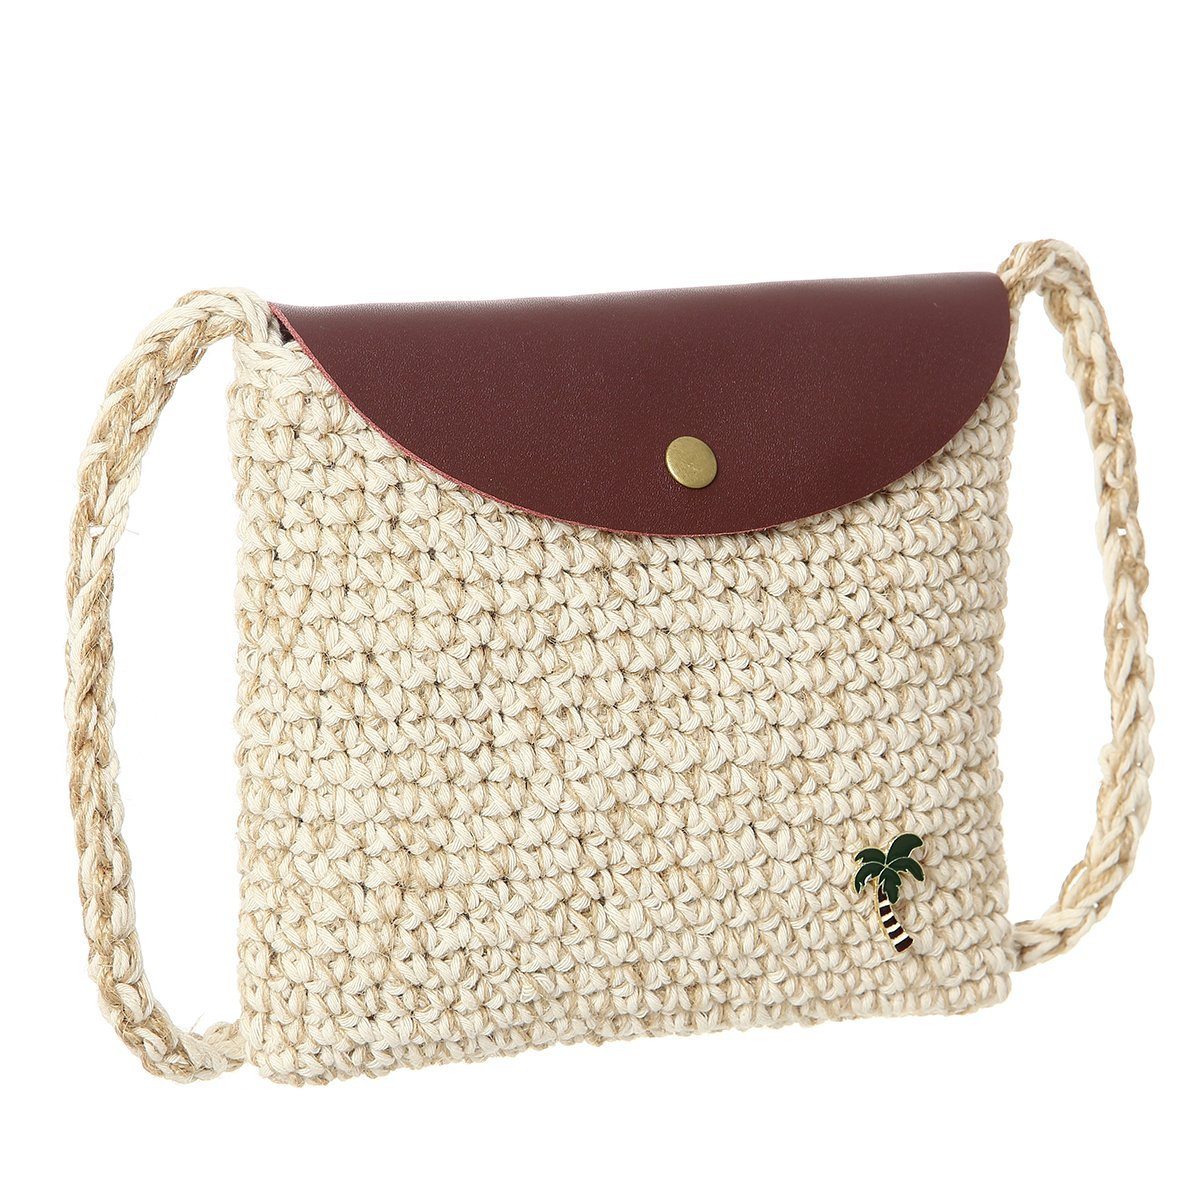 Weave Small Shoulder Handbag Crossbody Straw Bag Cell Phone Purse for Womens Summer style Straw Bag(Yellow)